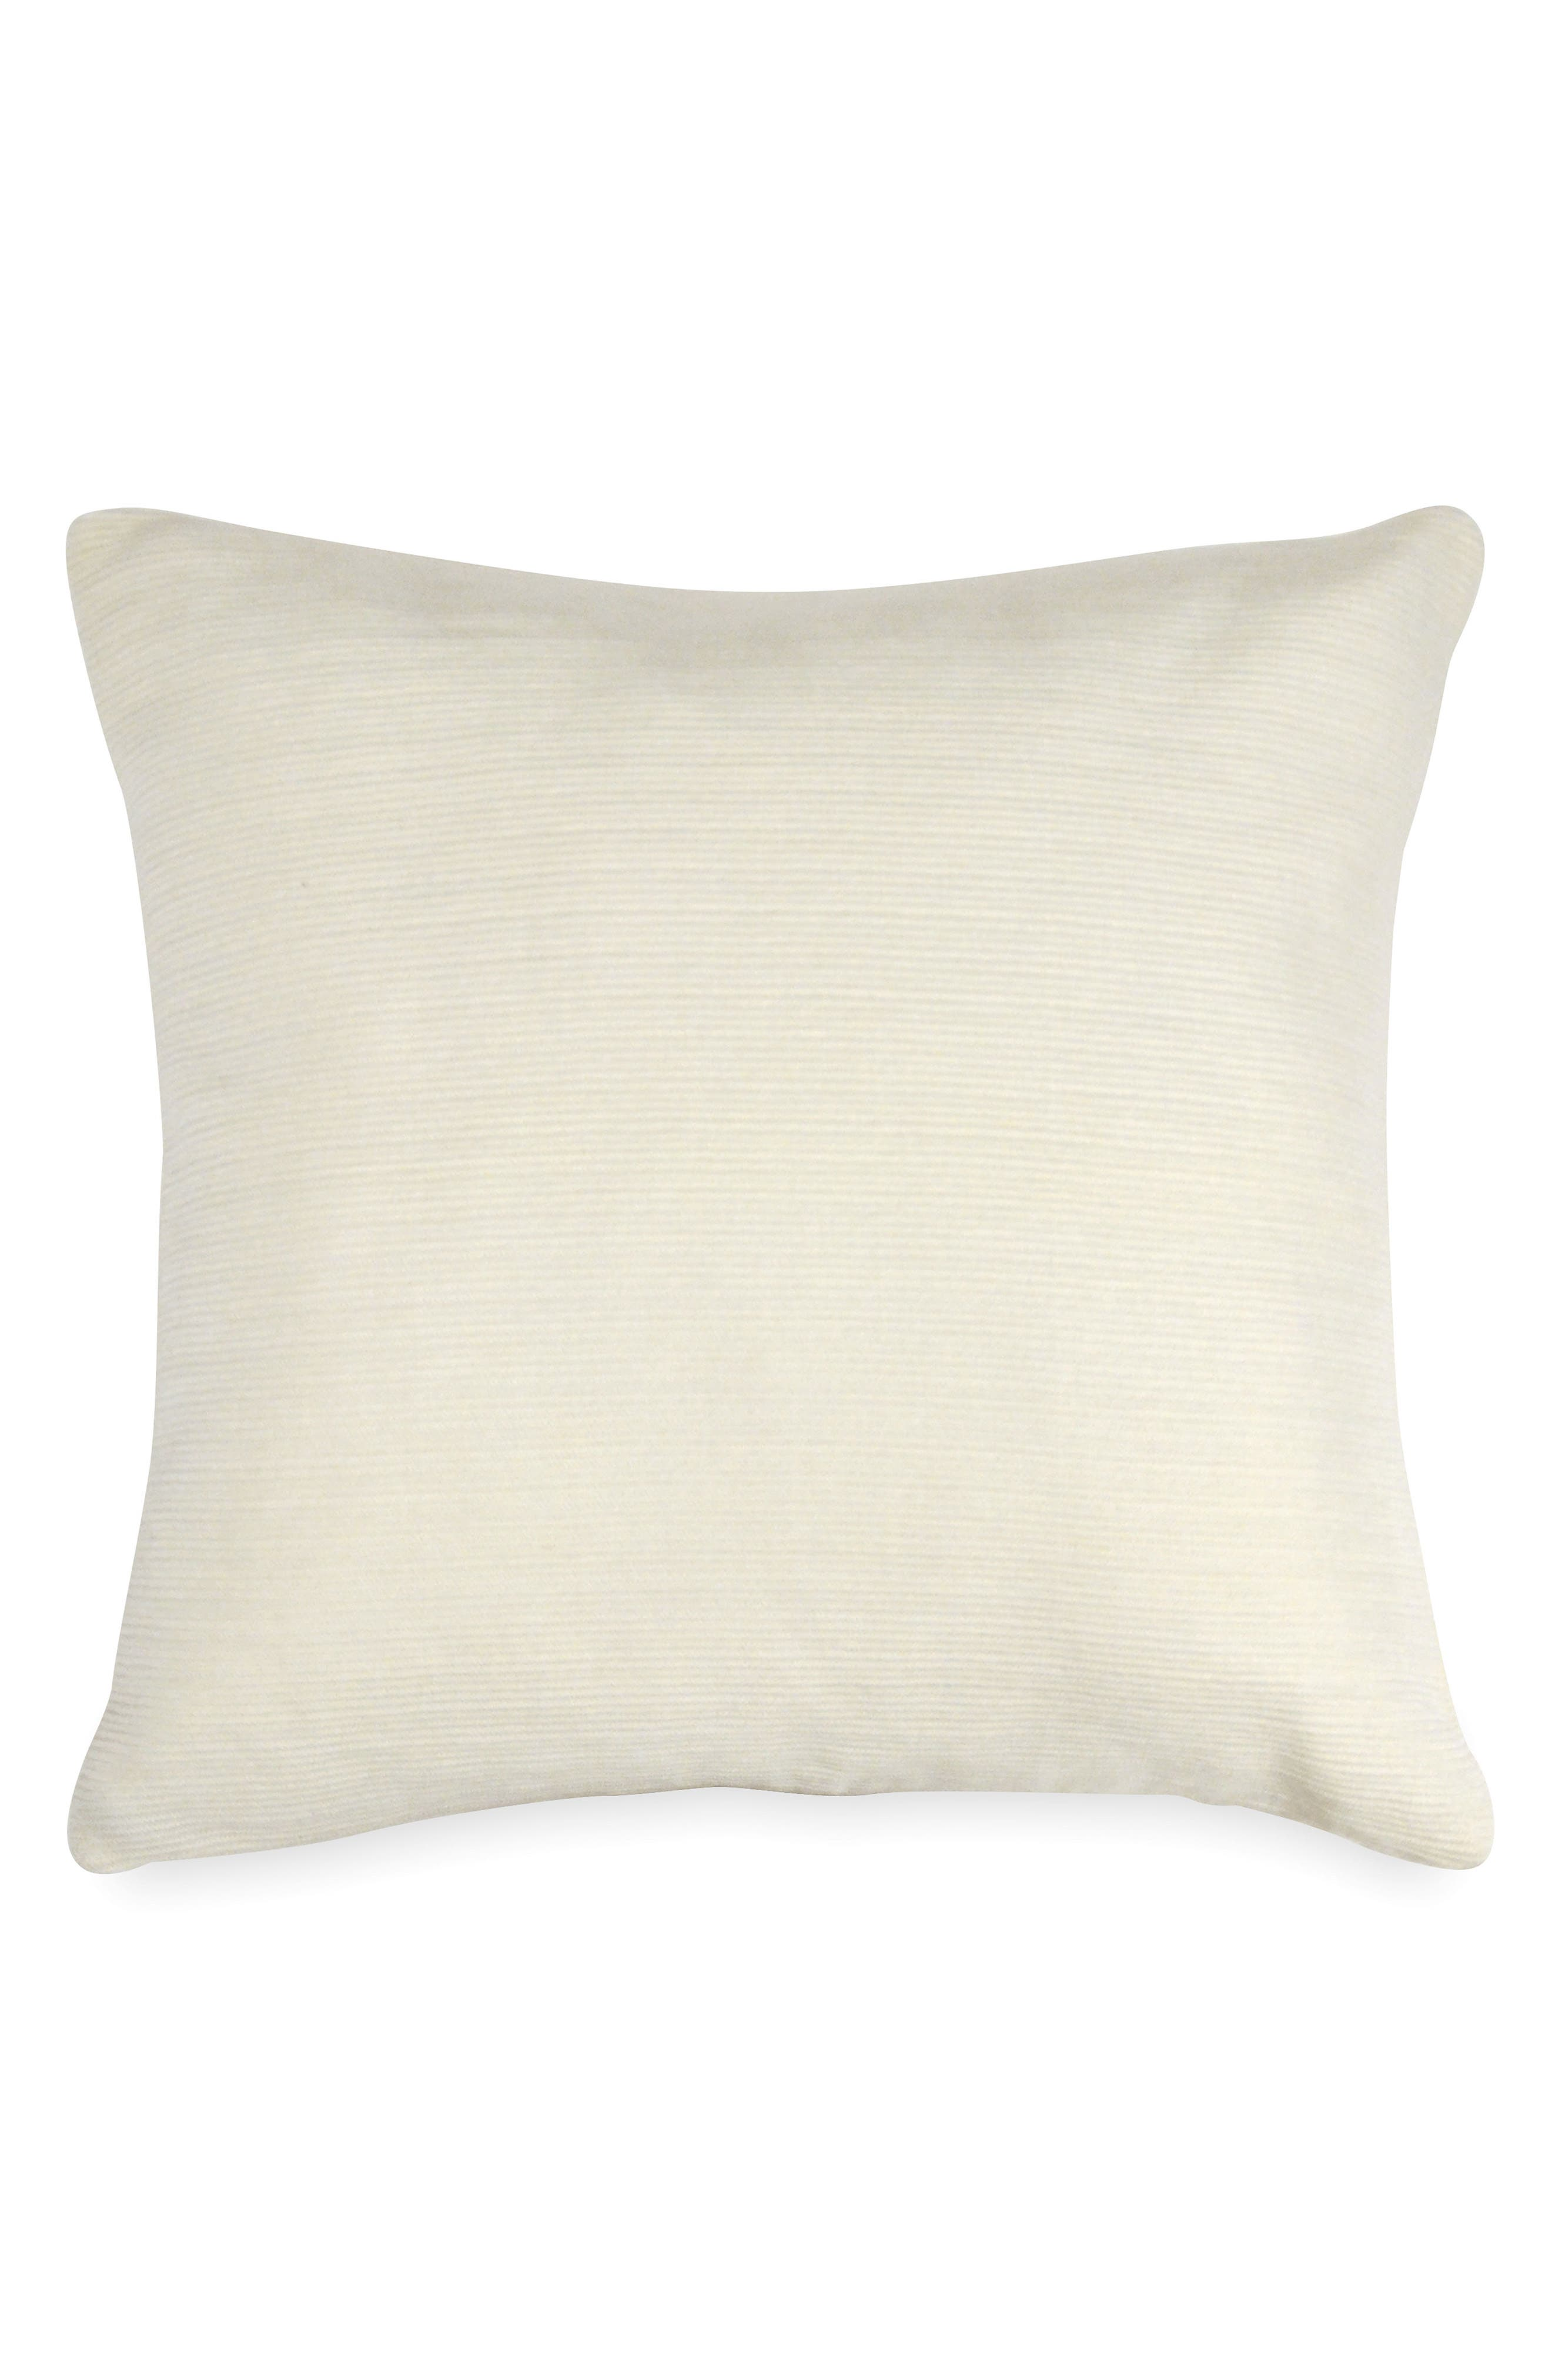 Motion Knit Accent Pillow,                             Main thumbnail 1, color,                             OATMEAL